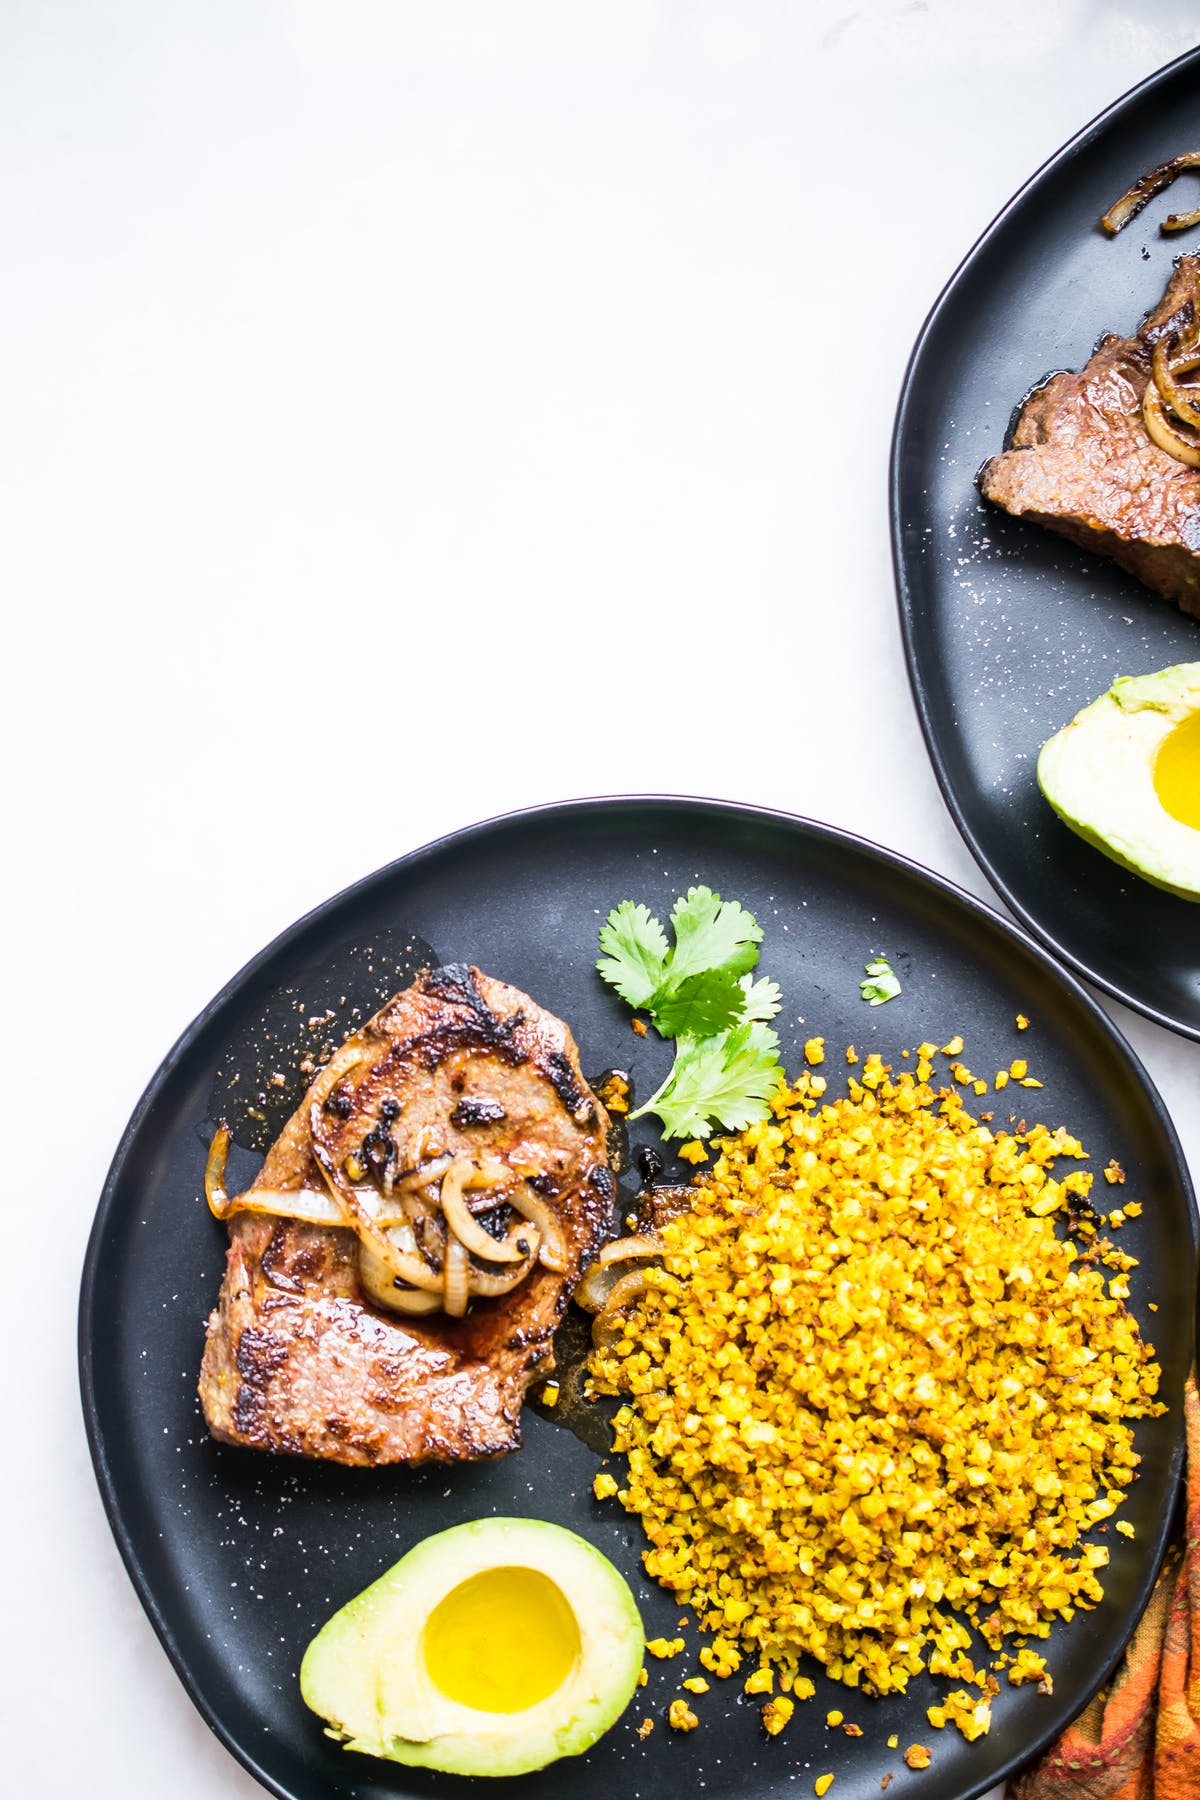 Pan-seared steak with yellow rice